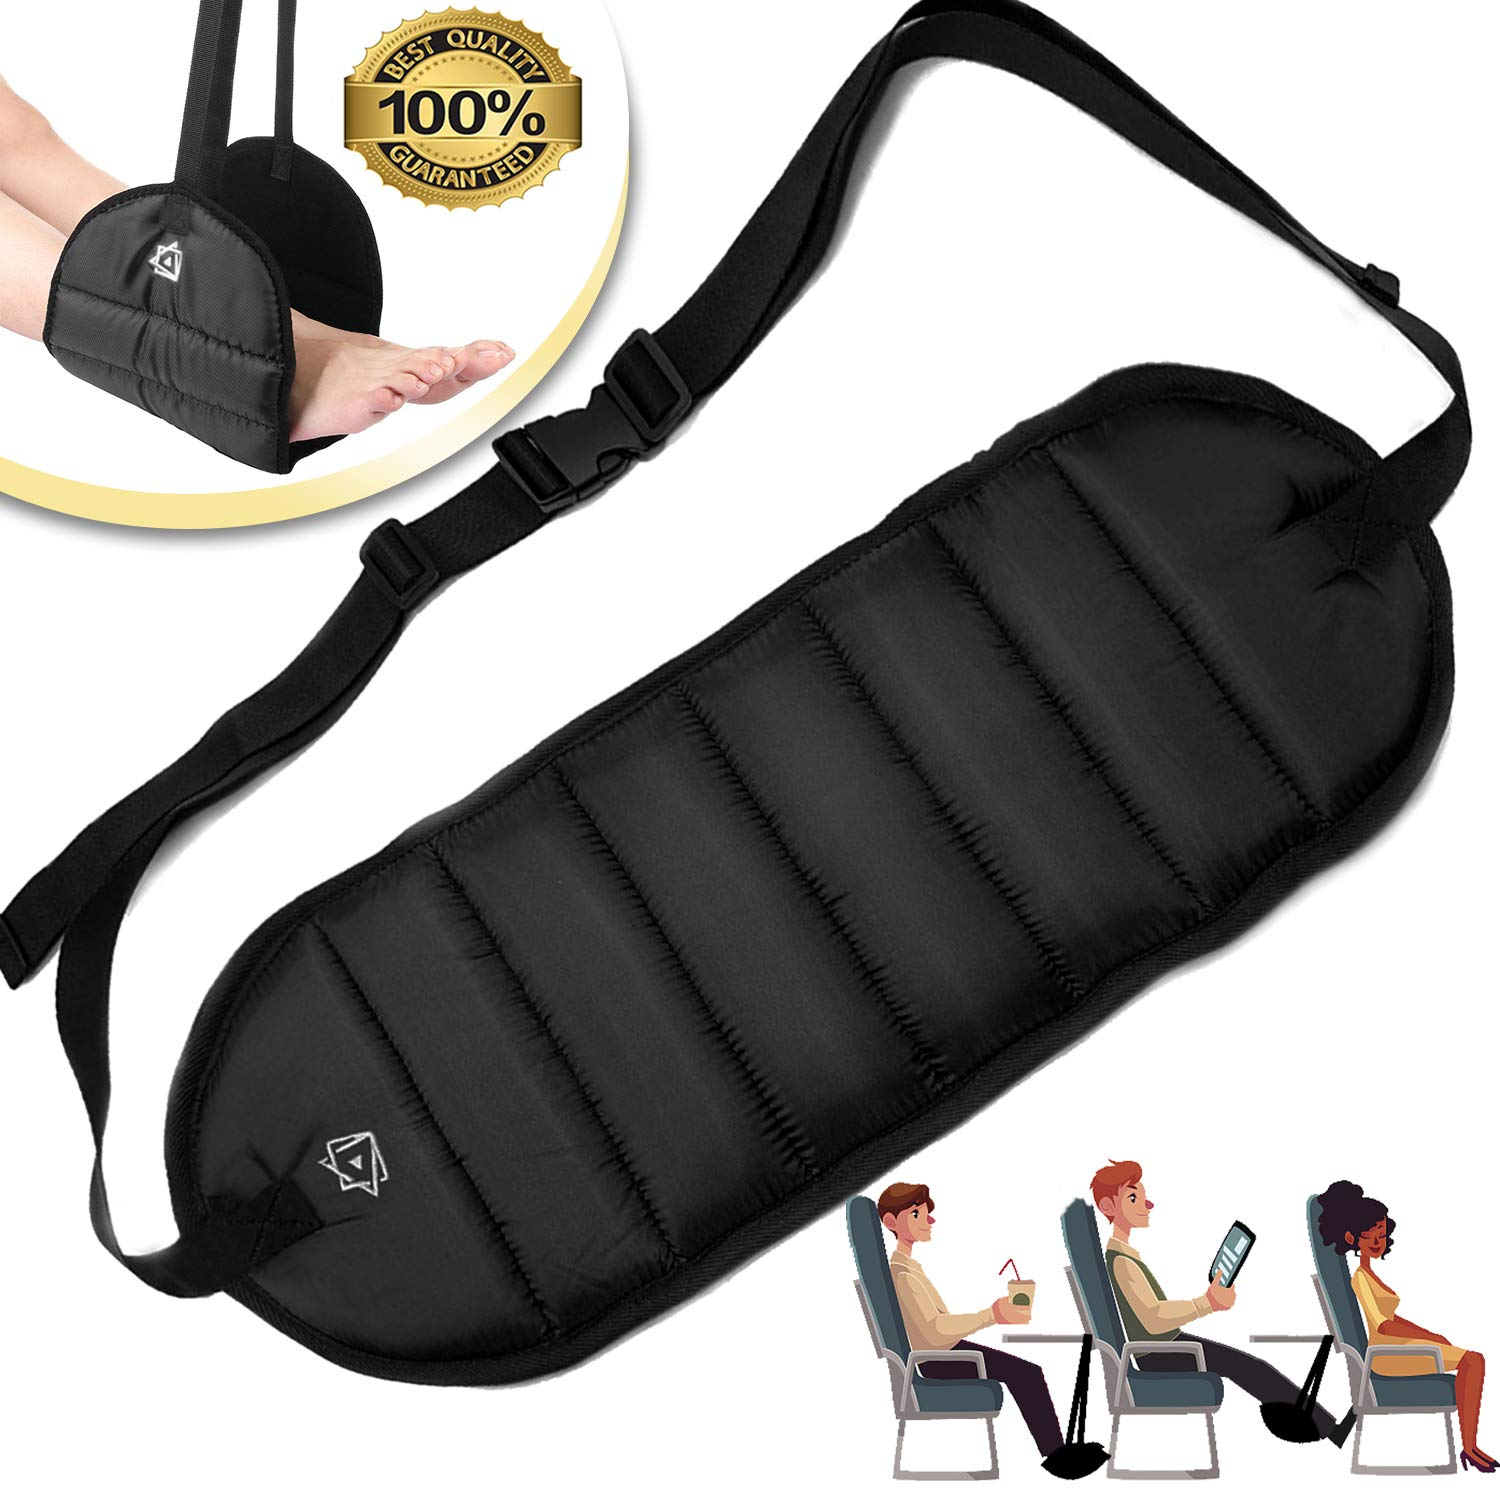 Foot Rest Airplane Travel Footrest - Flight Leg Hammock Hanger Sling to Prevent Back, Leg, Knee, Hip Pain & Stiffness - Portable Travel Accessories Adjustable Height for Plane, Train, Office by JUEYING